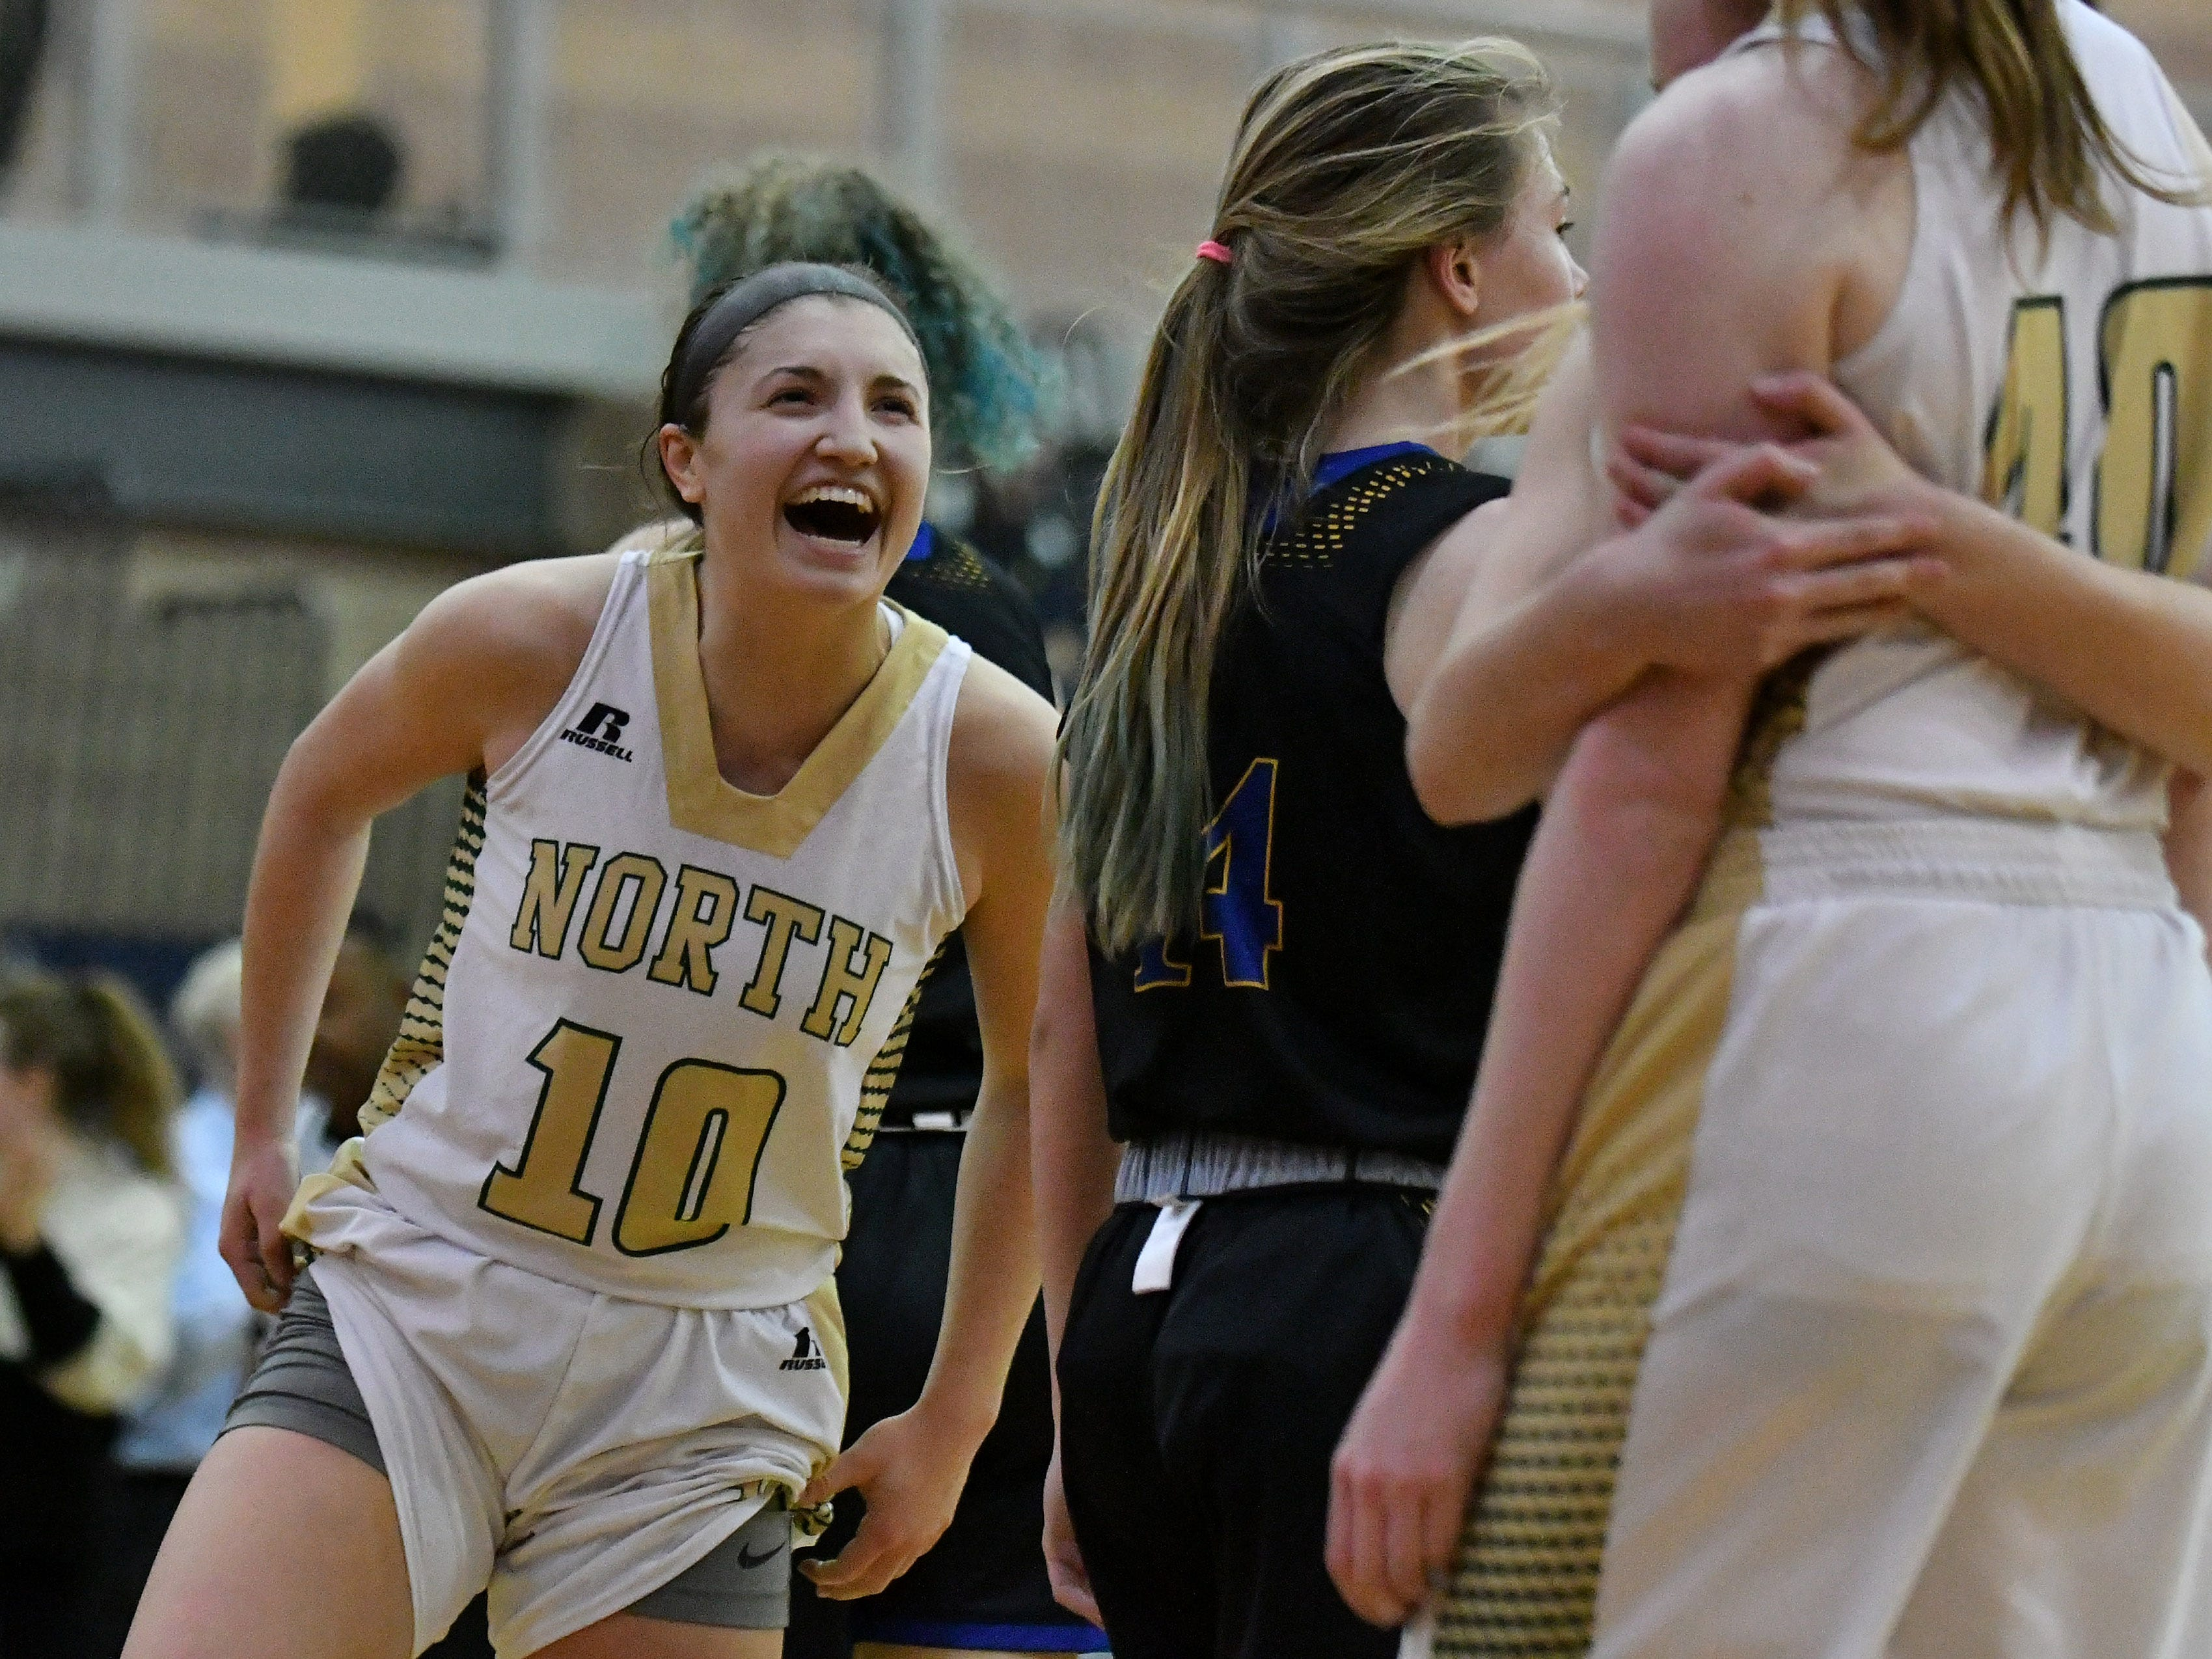 Grosse Pointe North's Evelyn Zacharias celebrates after a teammate scores in the second half of the 60-48 victory over Birmingham Marian in the regional semifinals in Southfield, Michigan on March 11, 2019.